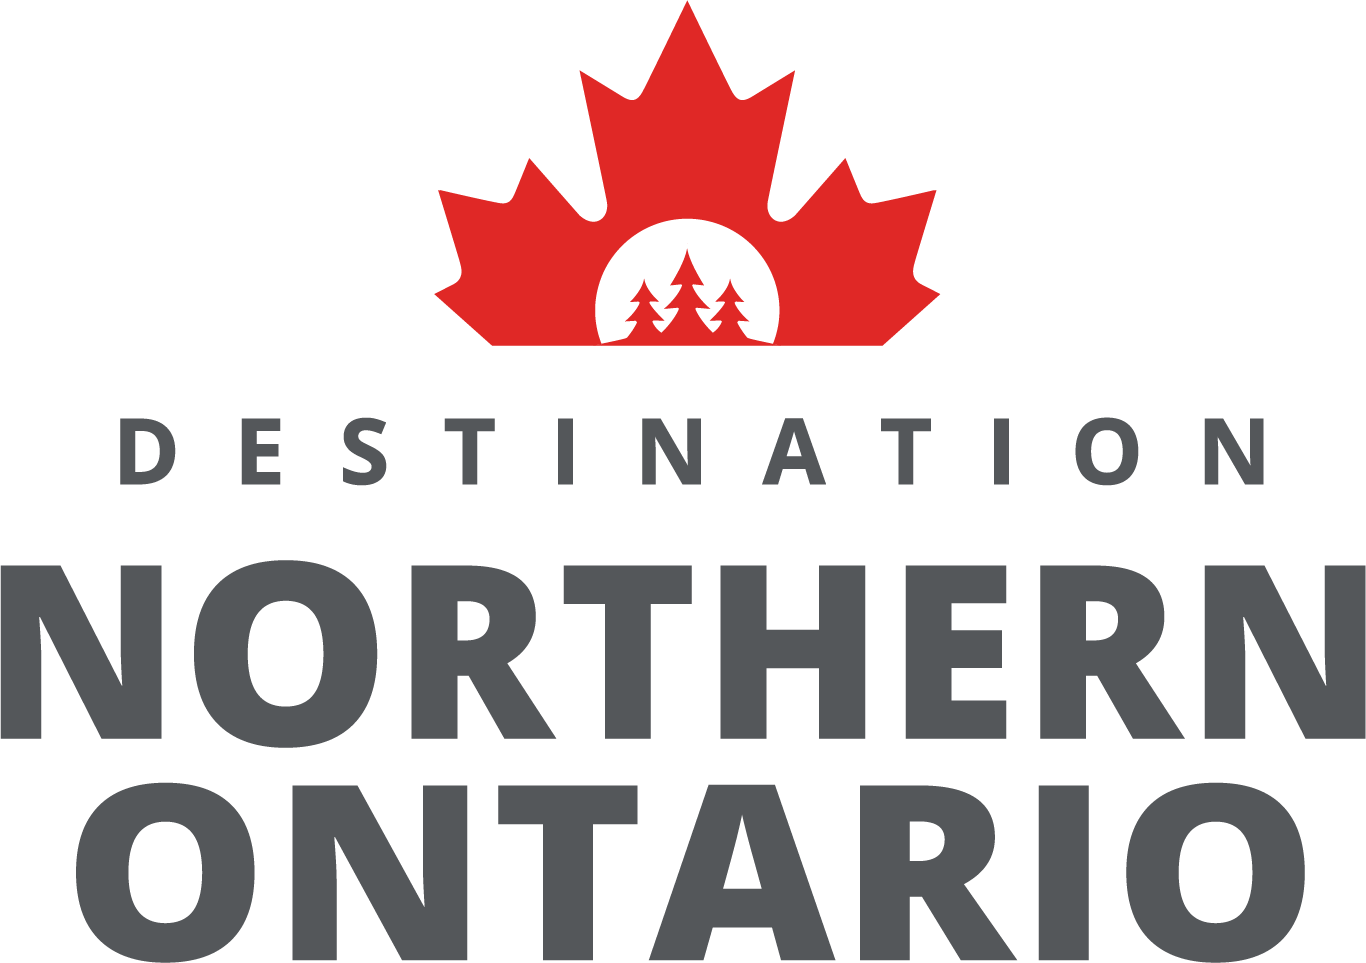 DestinationNorthernOntario_Grey+Red